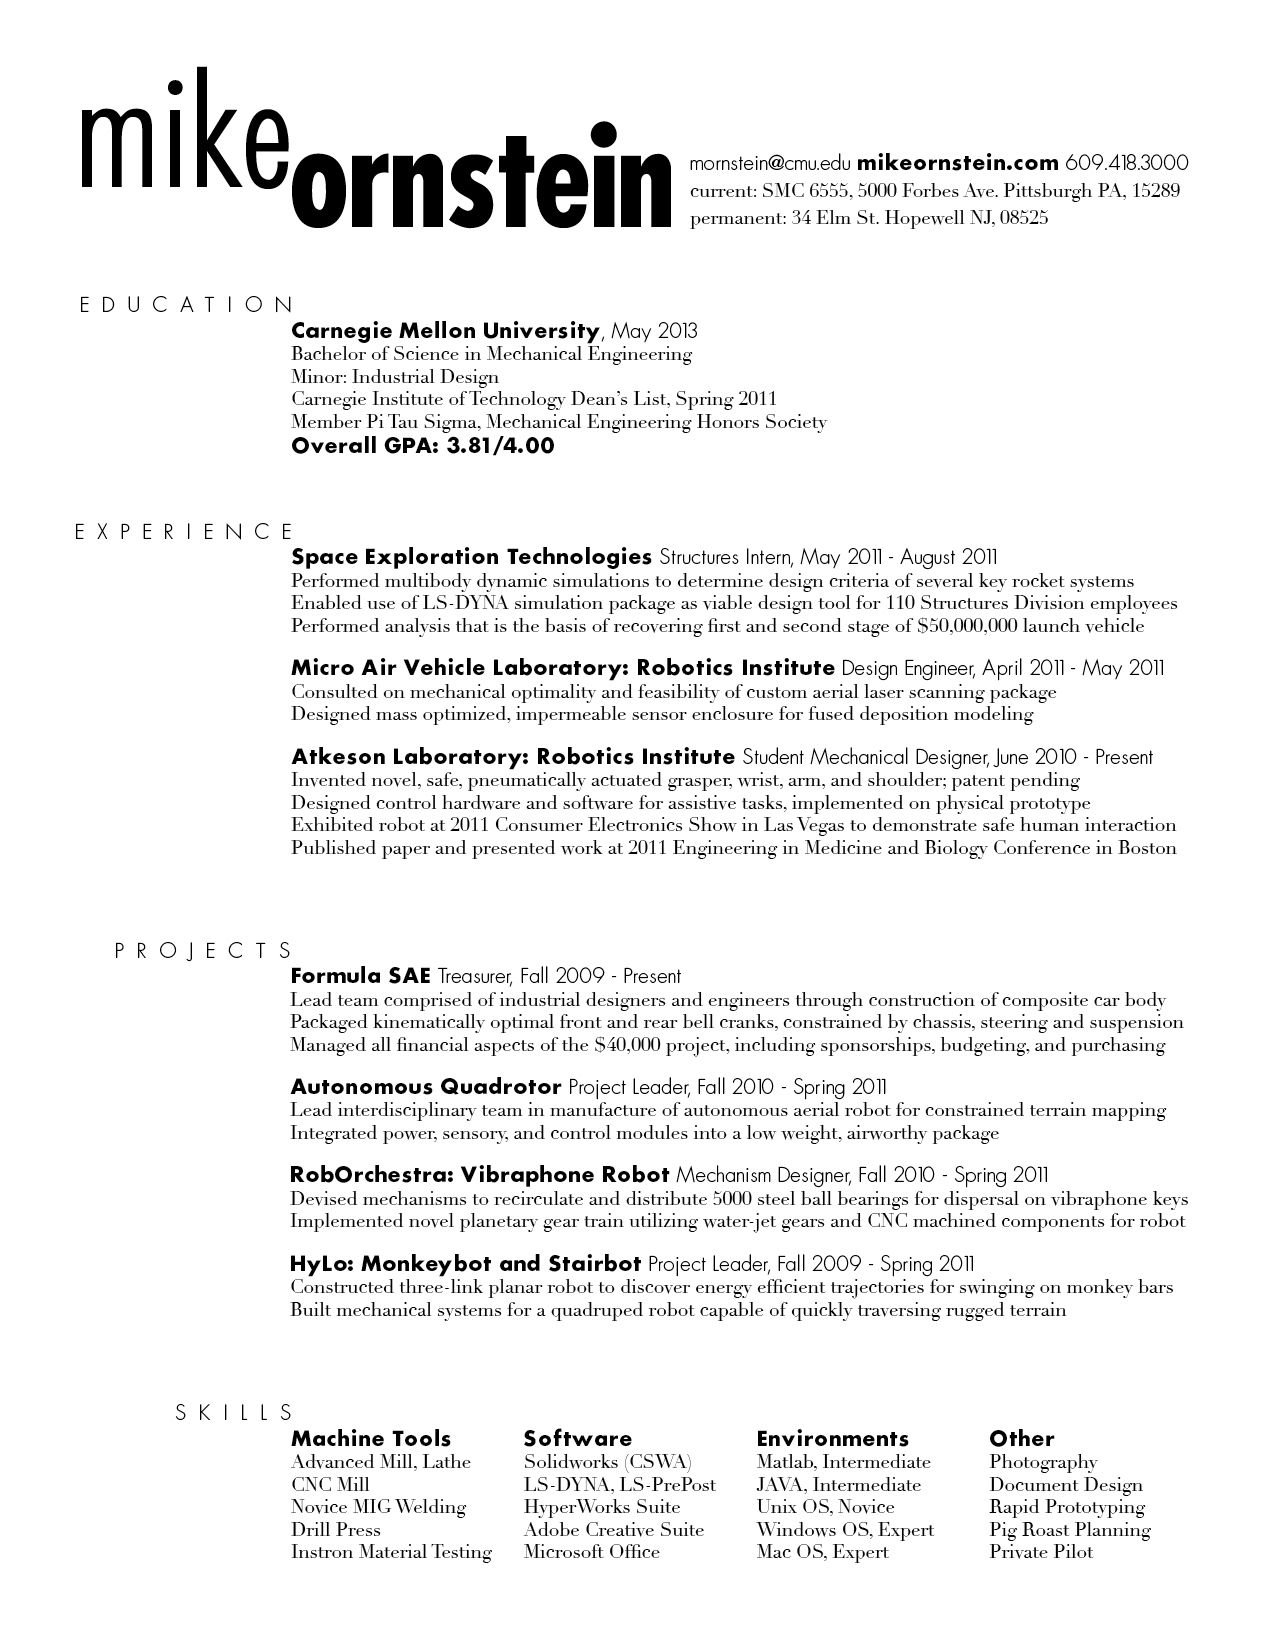 Resume rough draft – Mike Ornstein